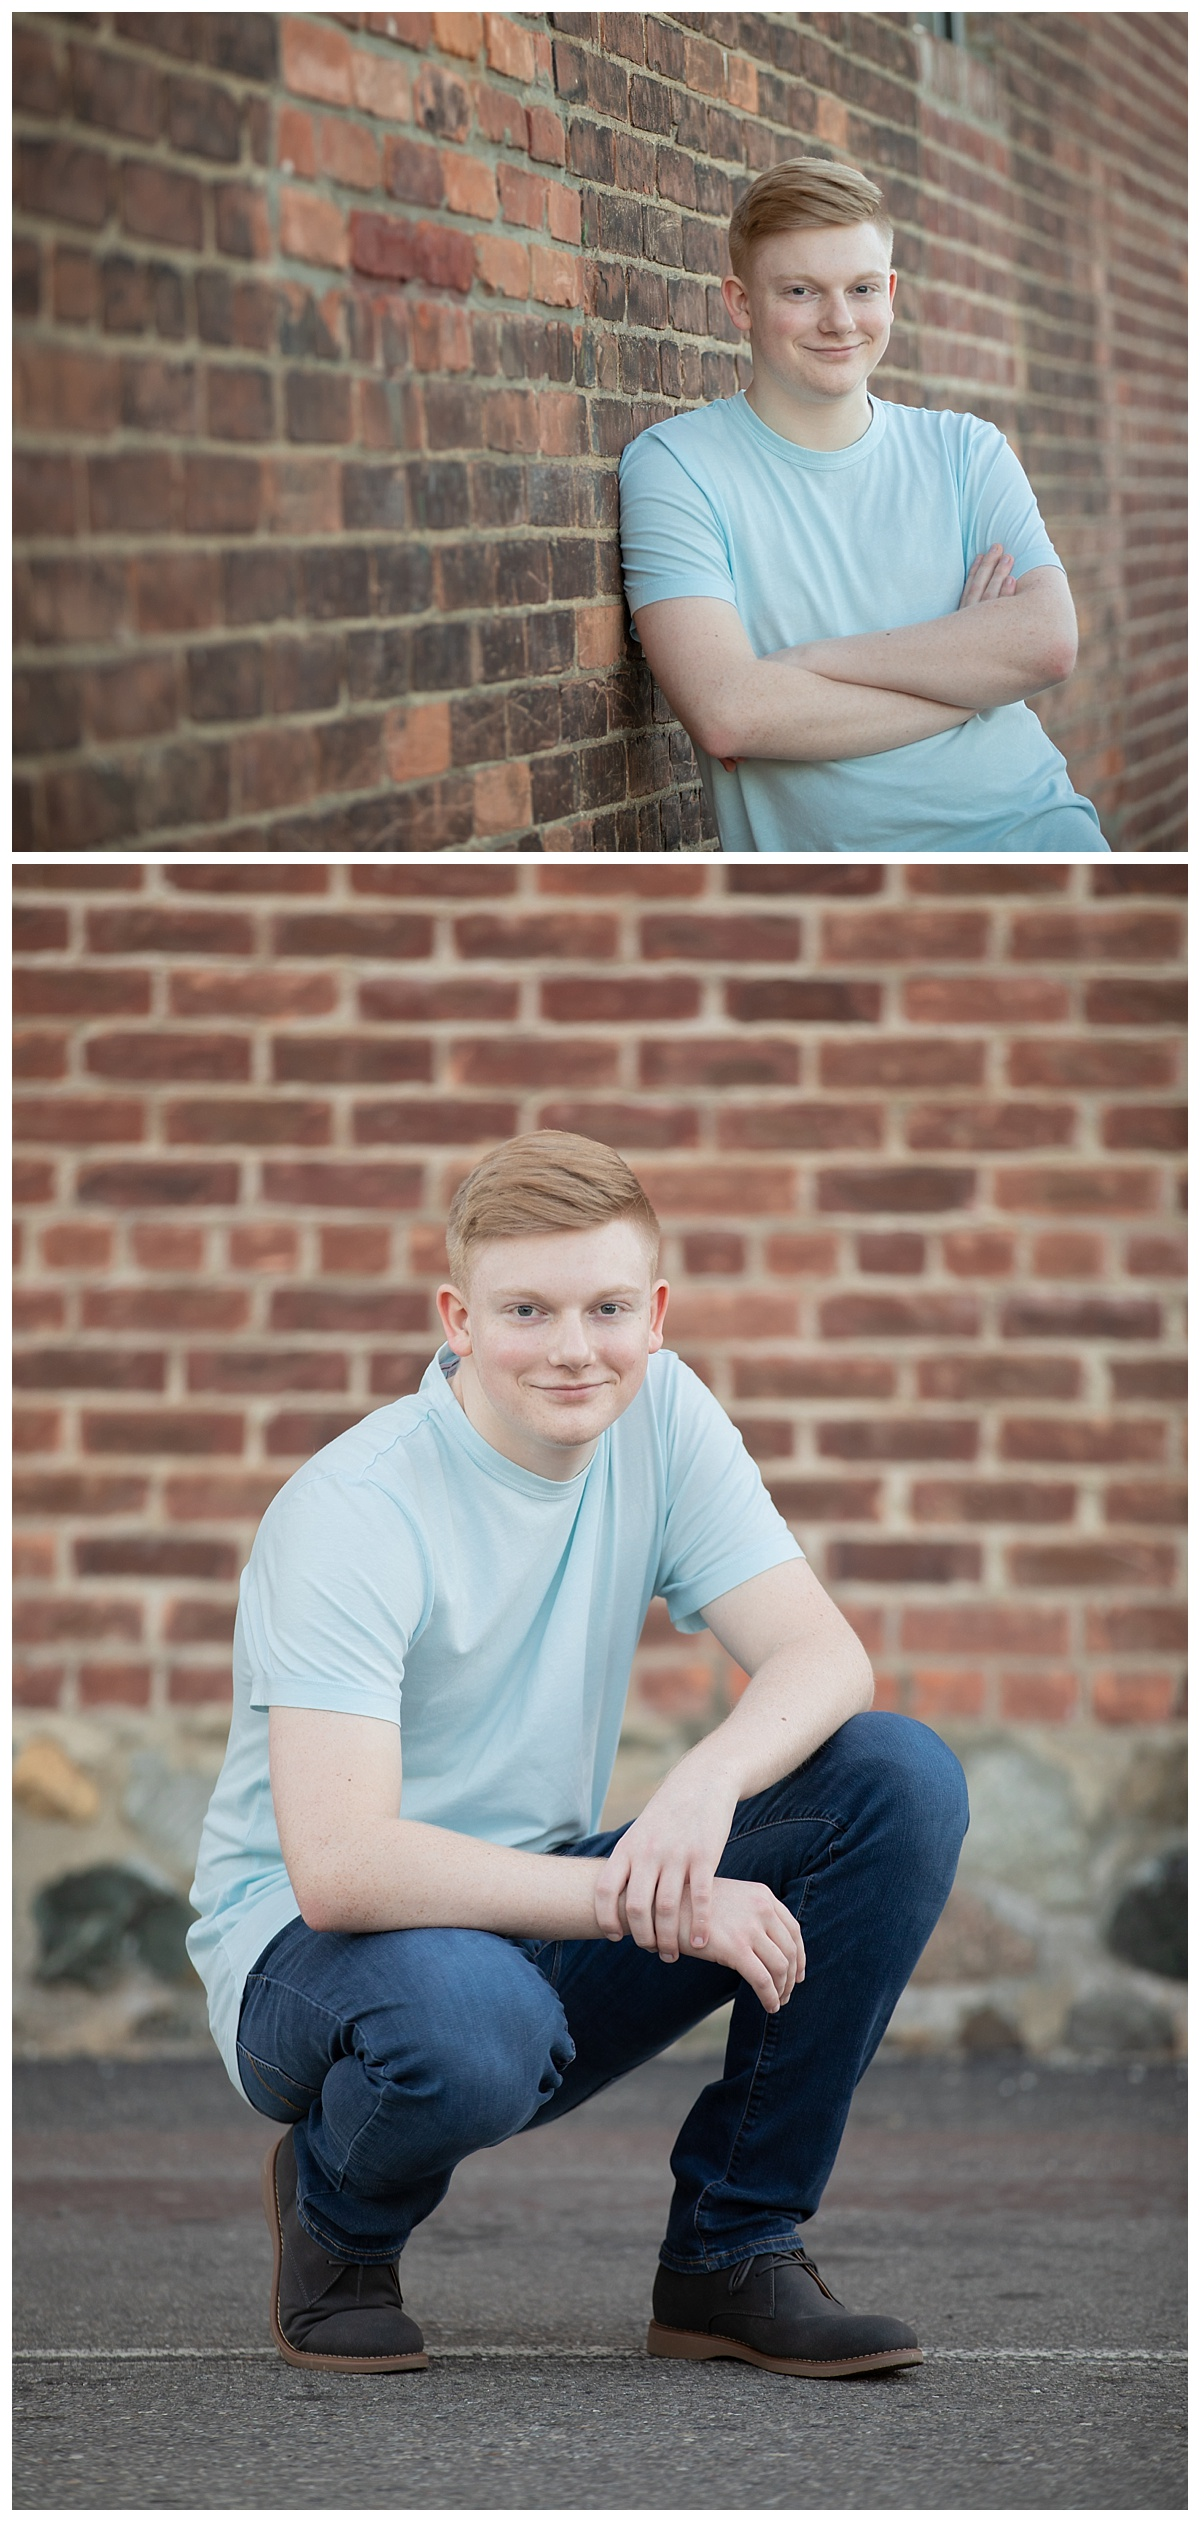 senior guy portraits with brick